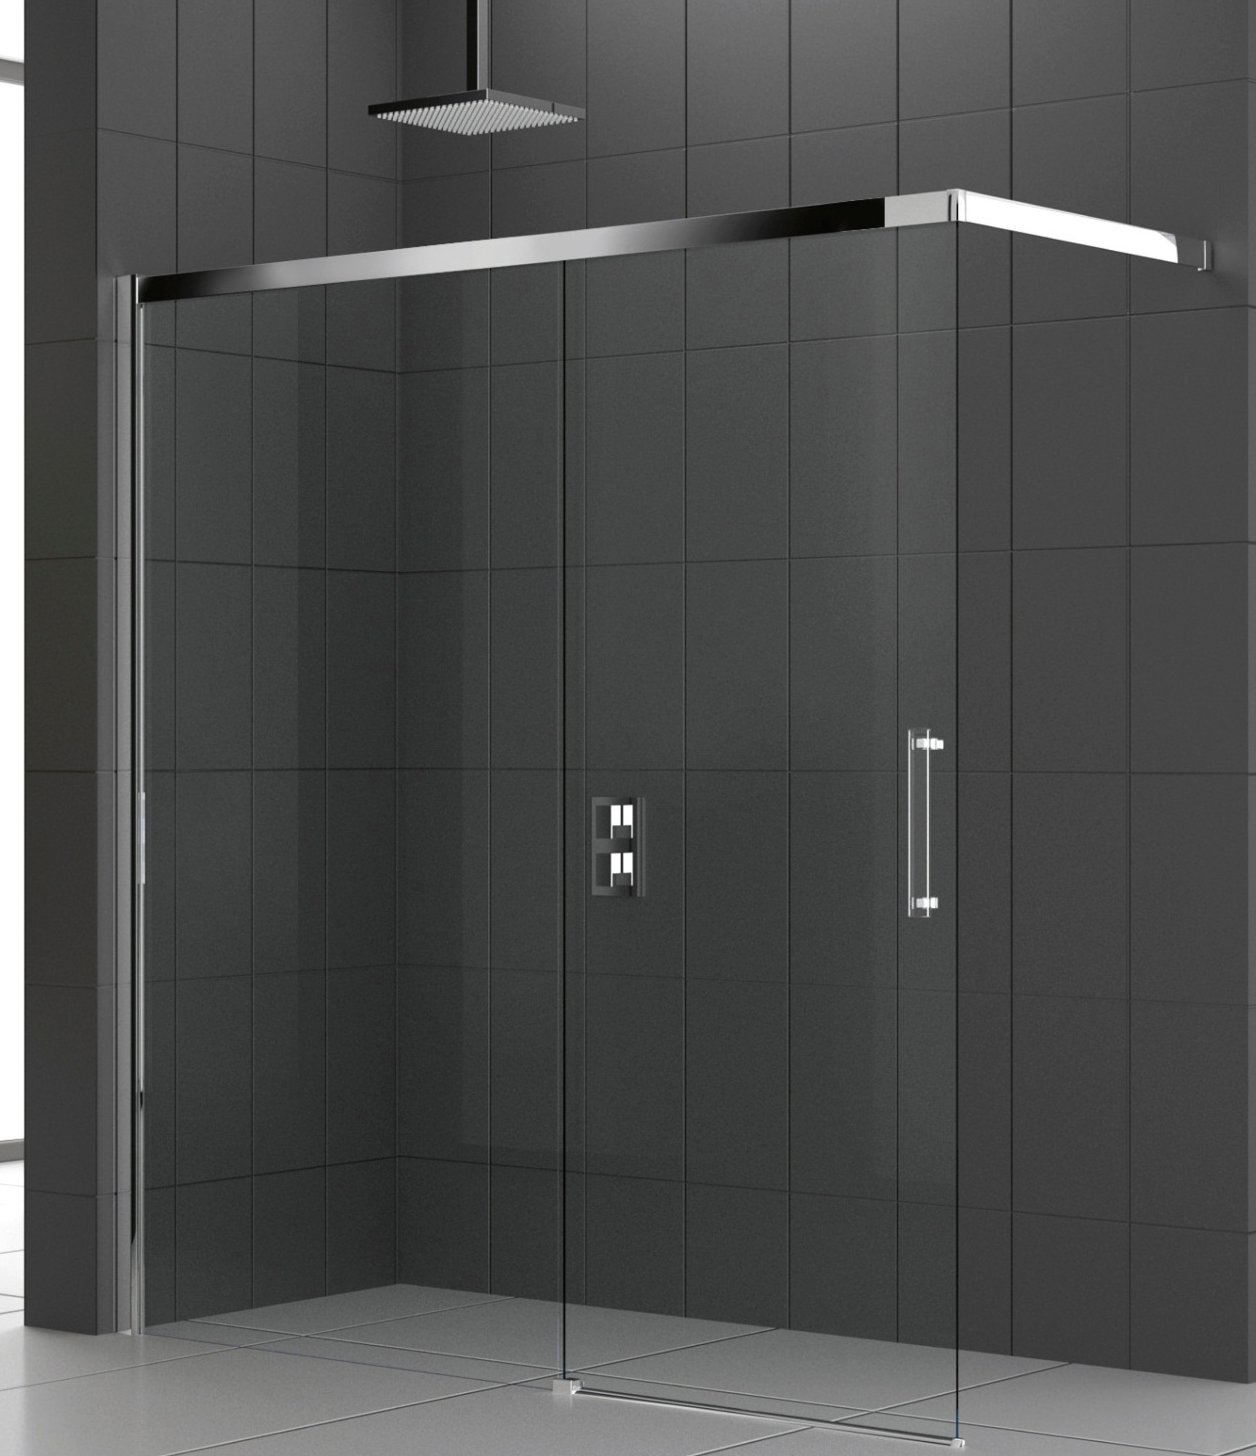 Aqualys burdin bossert prolians besancon collection paroi for Porte pour douche a litalienne